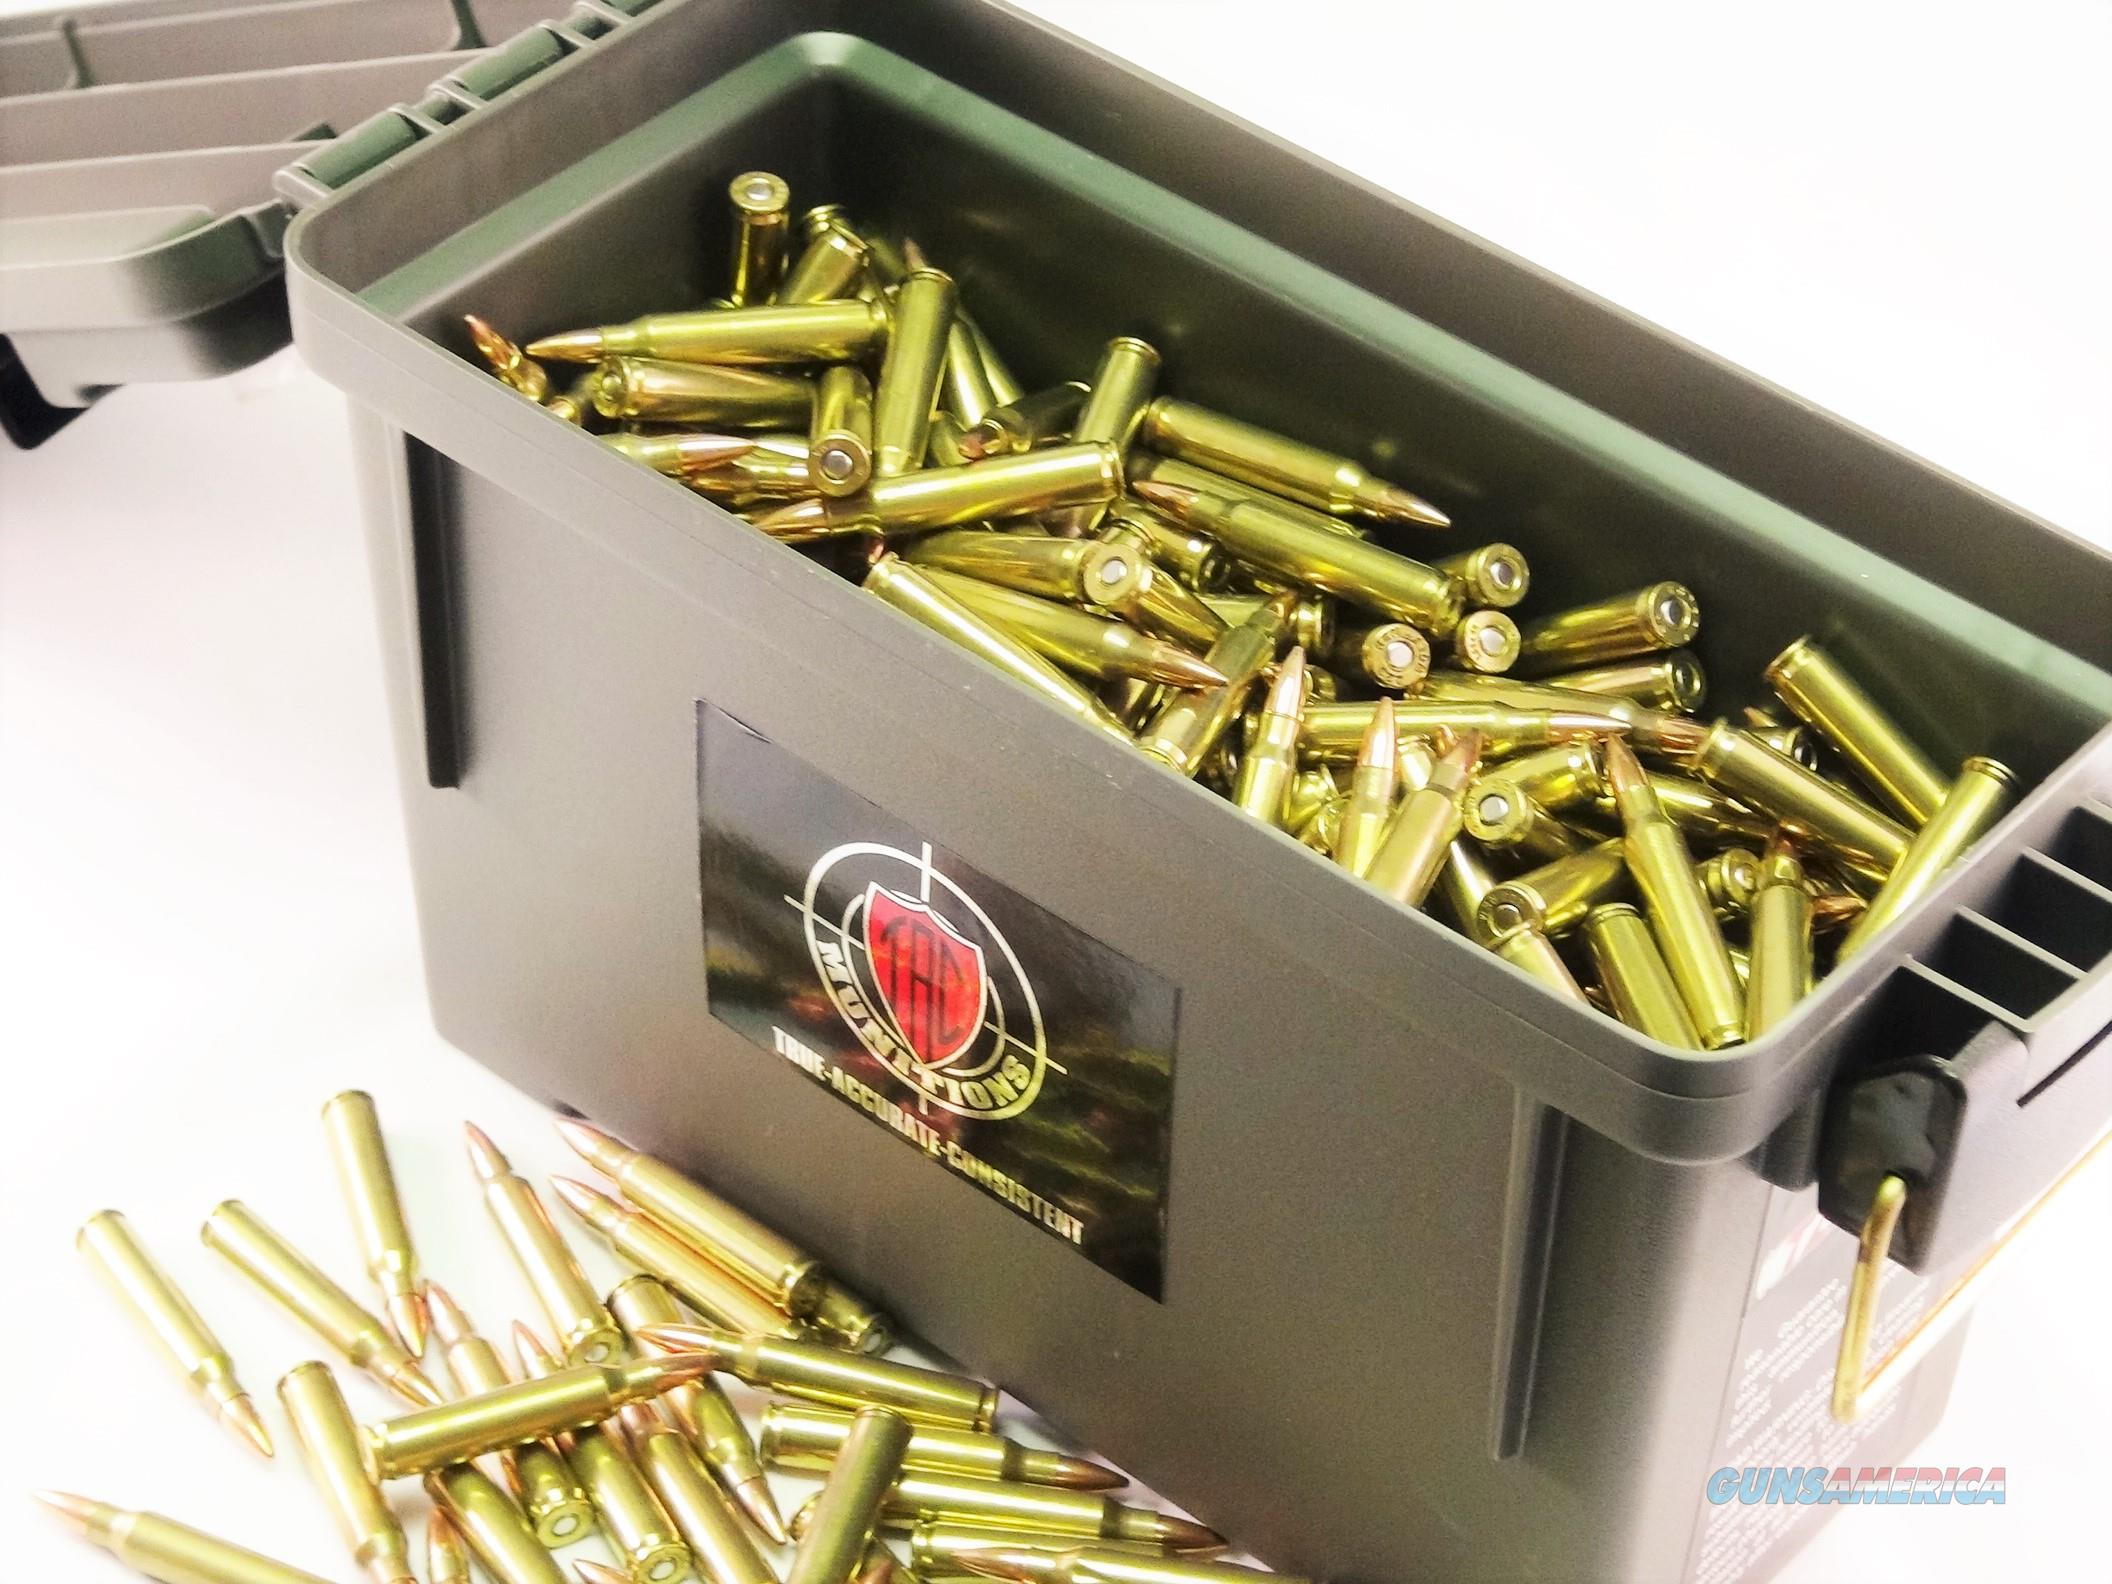 TAC Ammo .223 FMJ-BT 55grain - 1,000 Rounds  Non-Guns > Ammunition